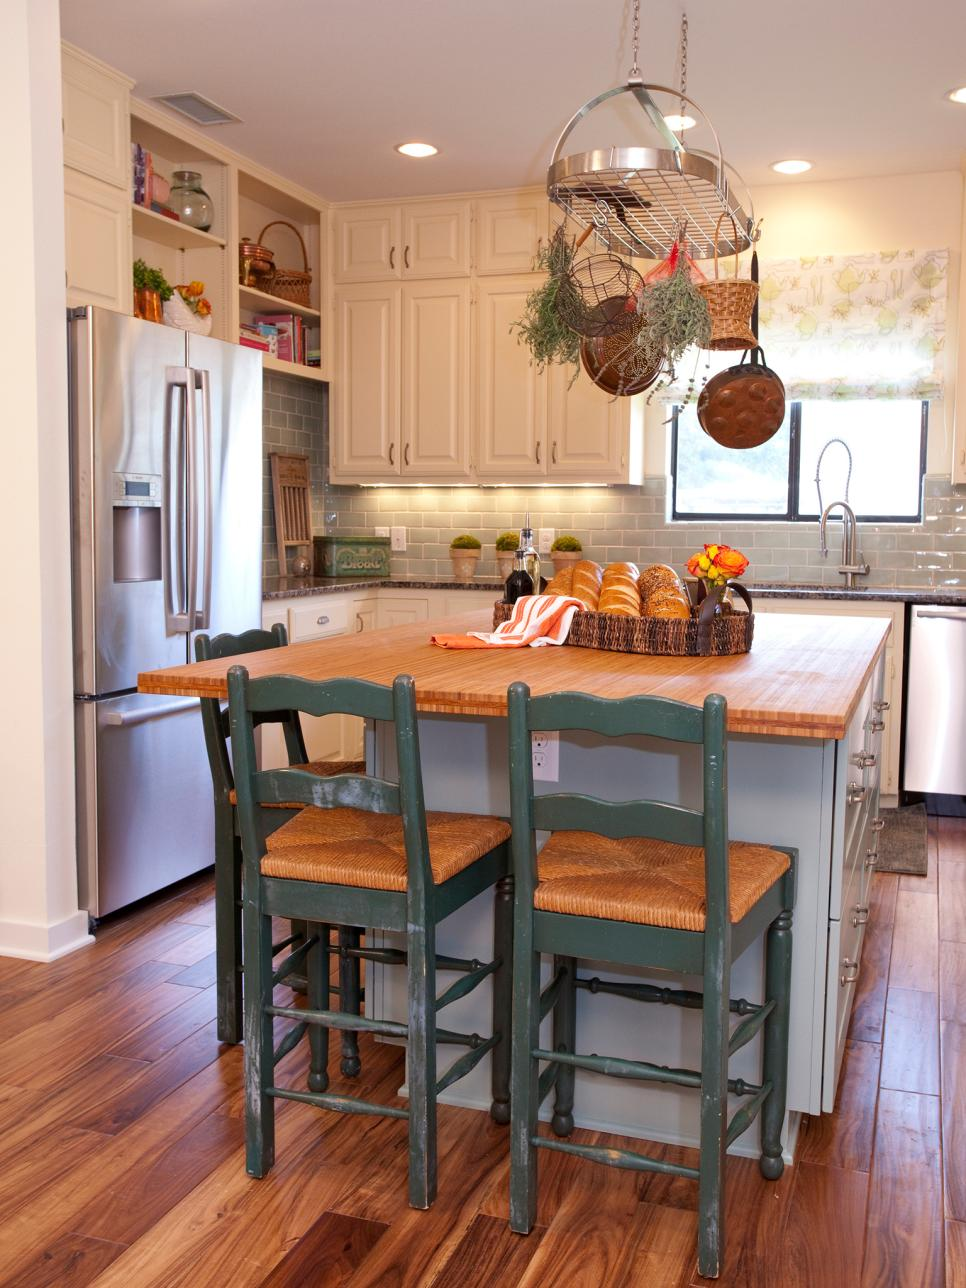 Pictures of Small Kitchen Design Ideas From HGTV | HGTV